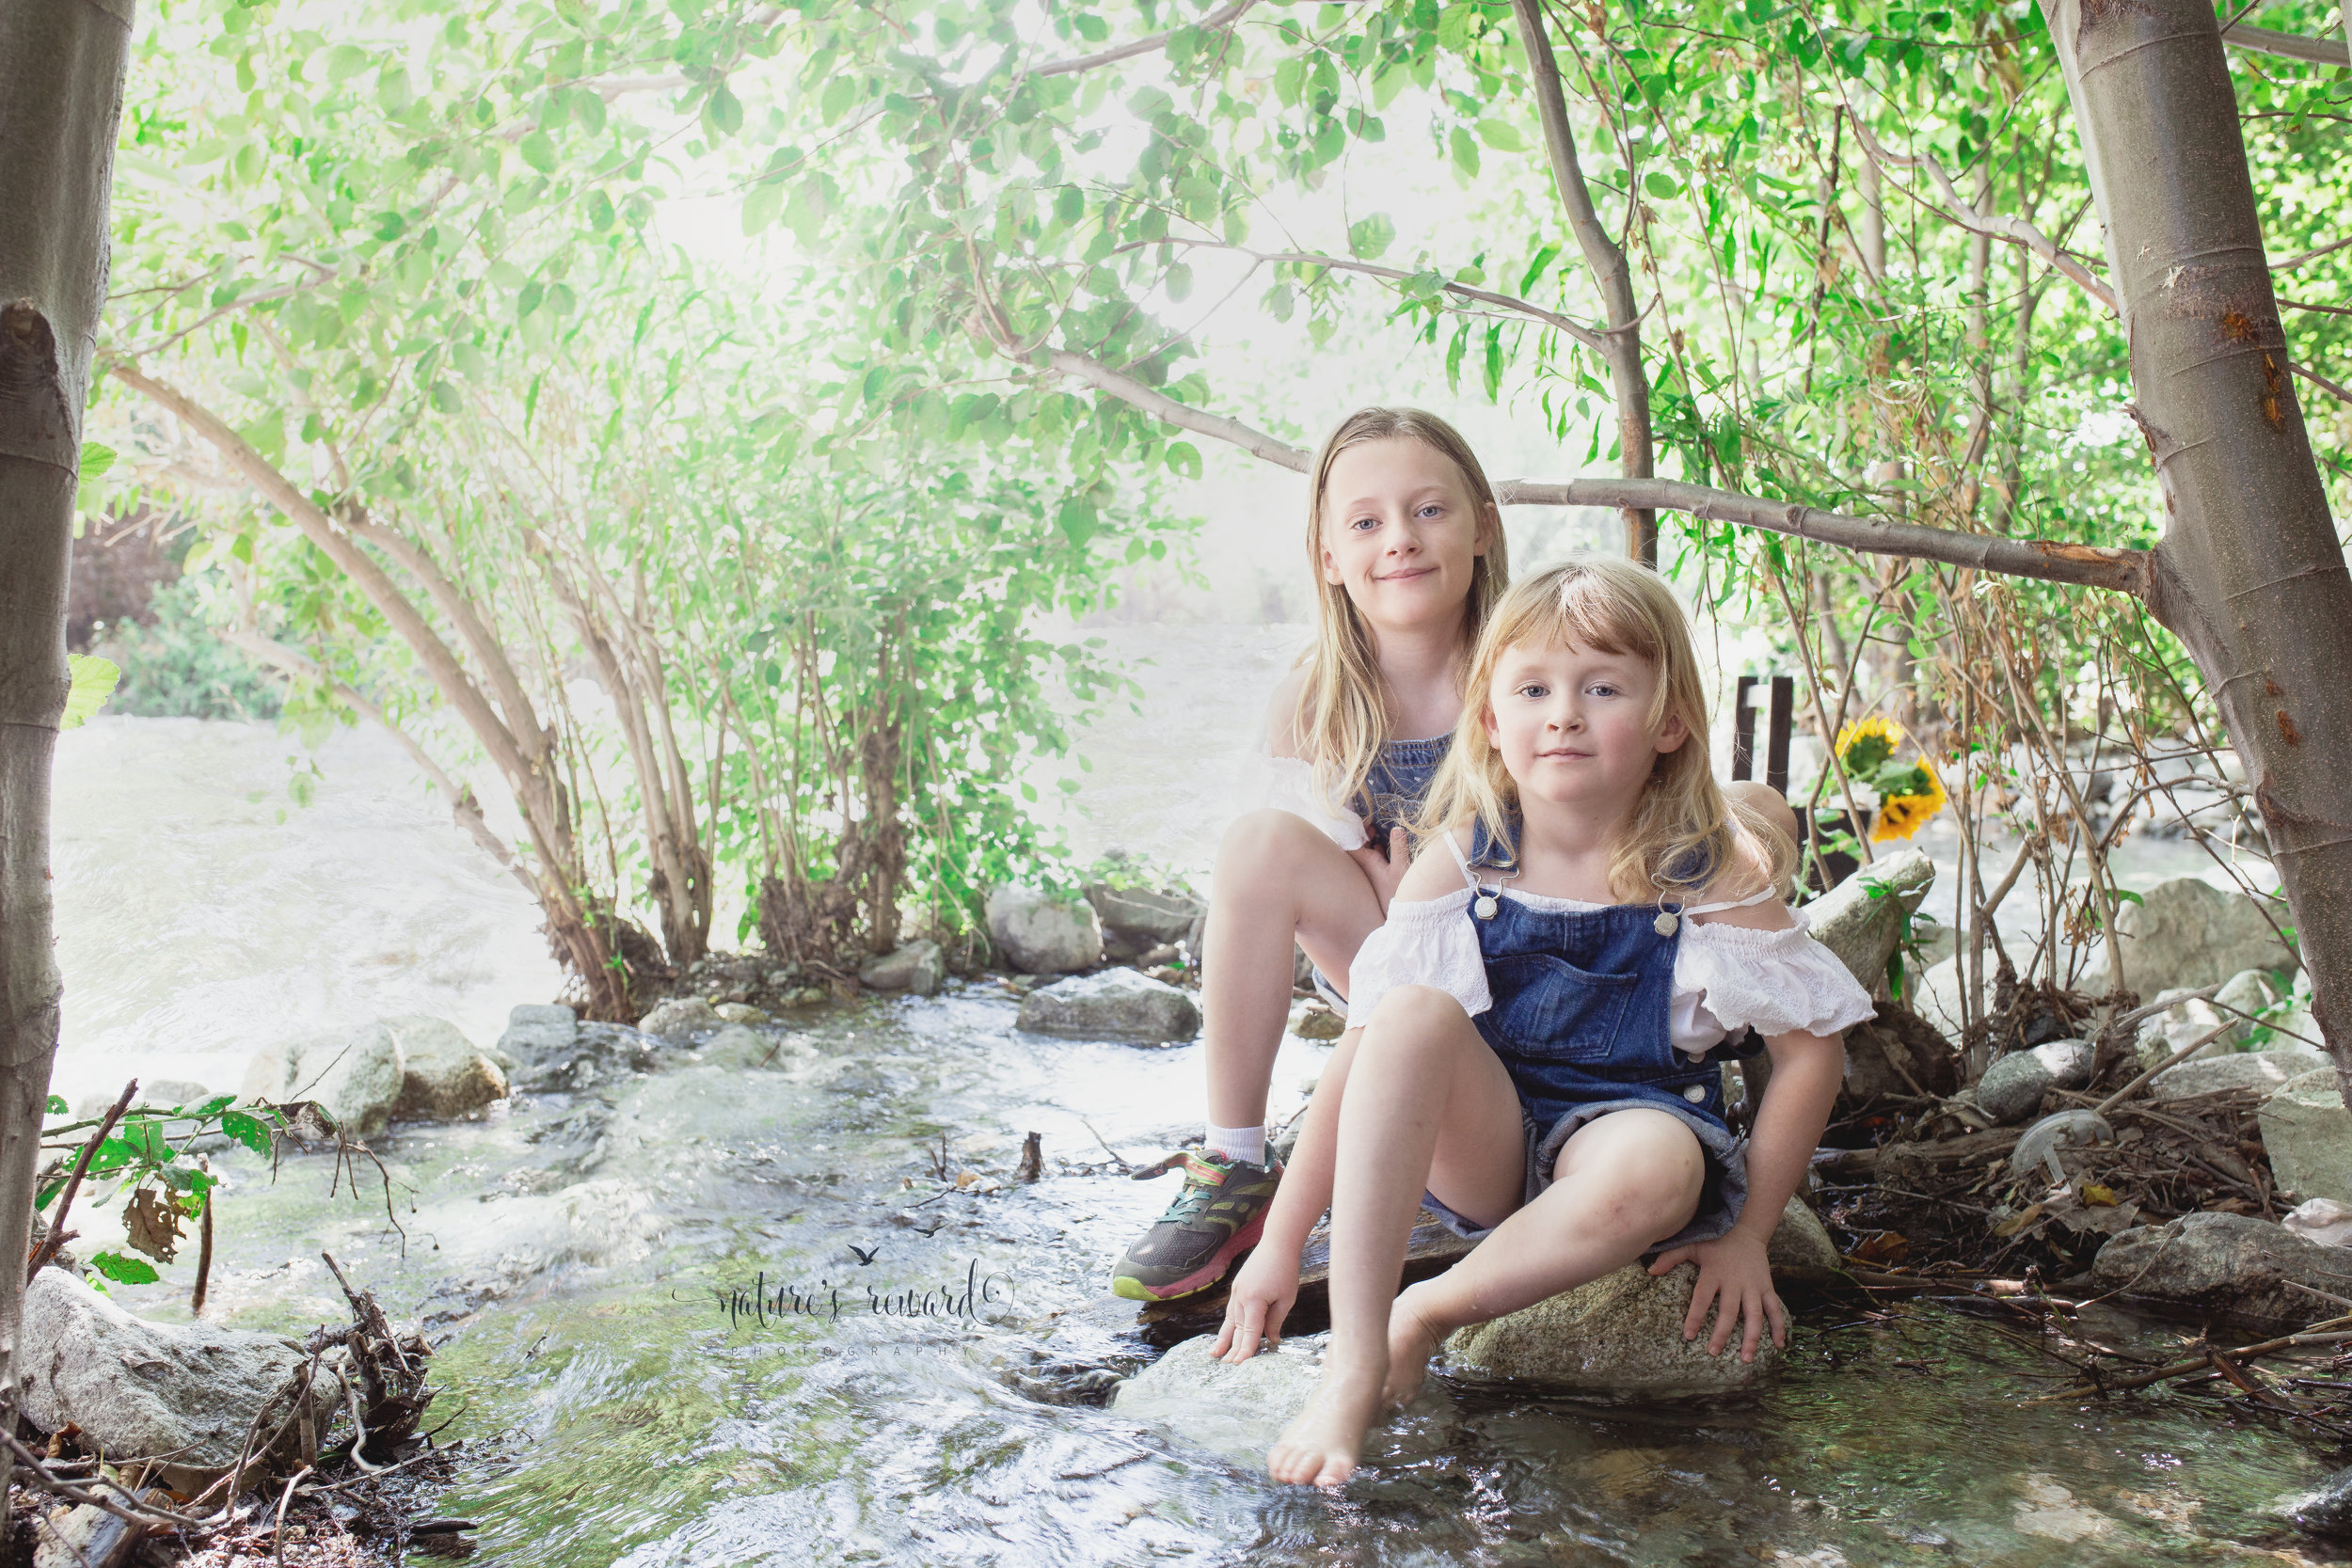 These lovely girls sitting on the rocks while the stream rolls by. Portrait by Nature's Reward Photography- a southern California photographer